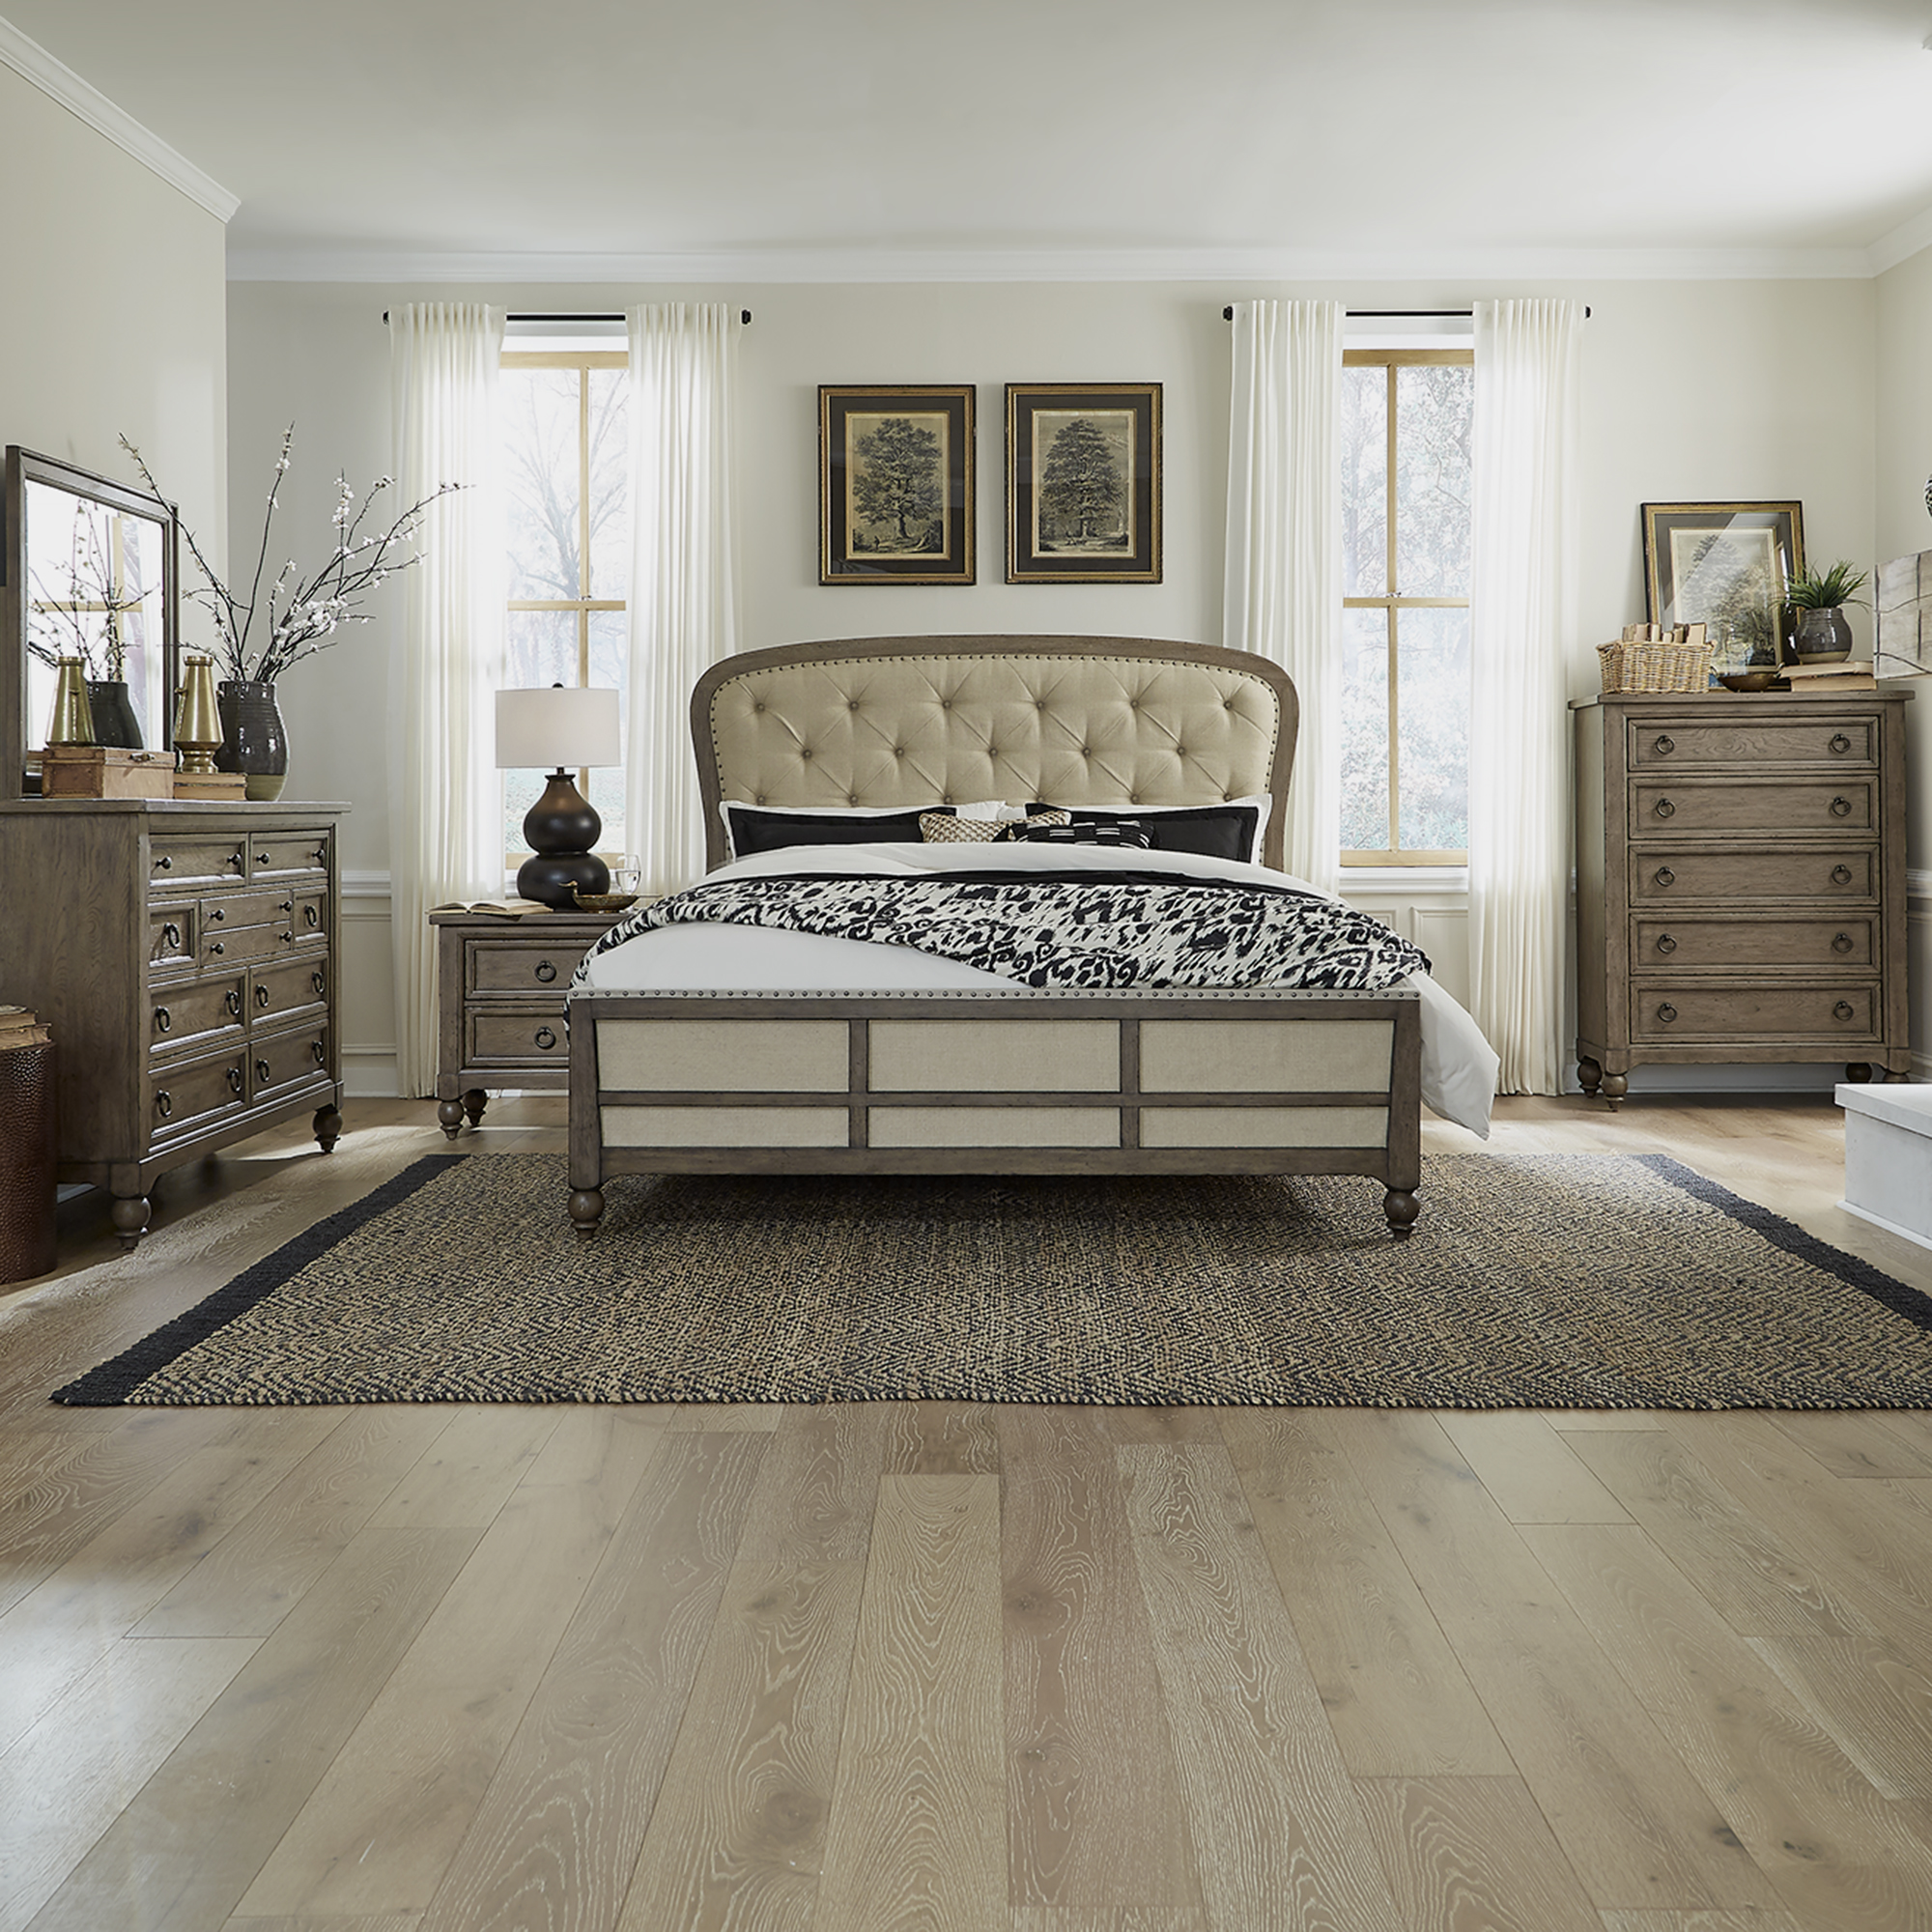 Americana Farmhouse Queen Shelter Bedroom Group by Liberty Furniture at Godby Home Furnishings